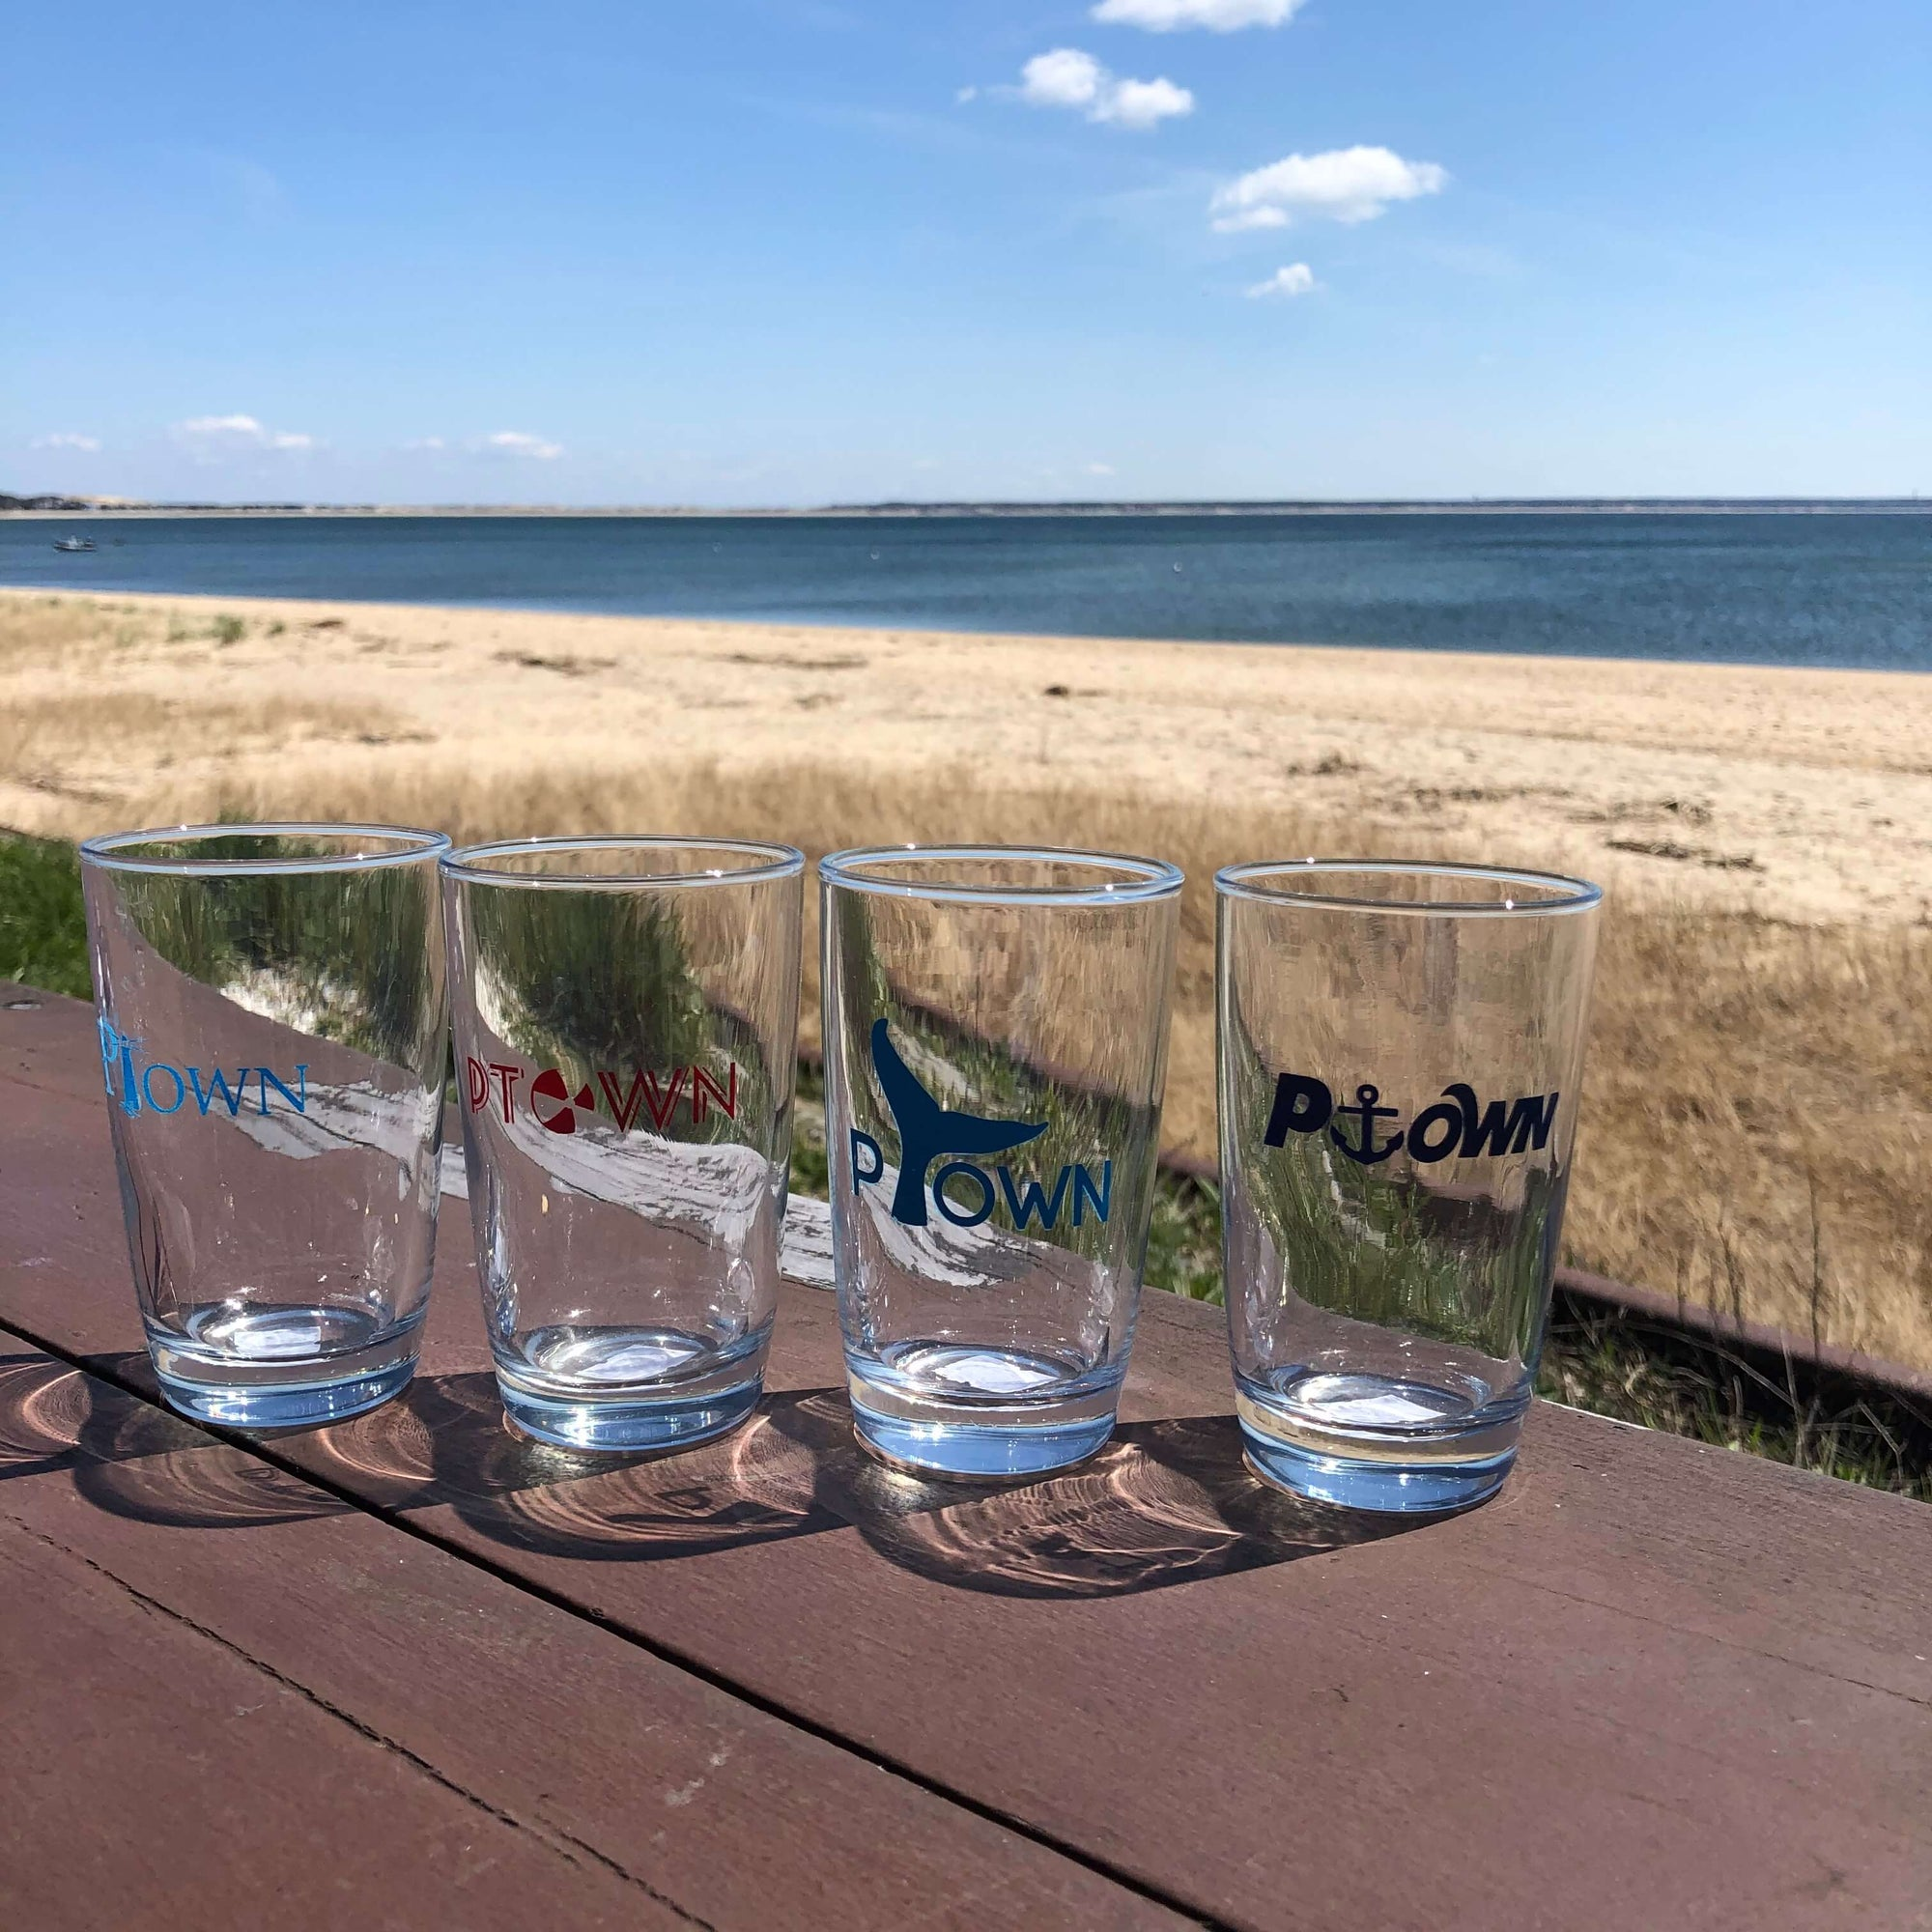 PTOWN 6oz Juice Glasses